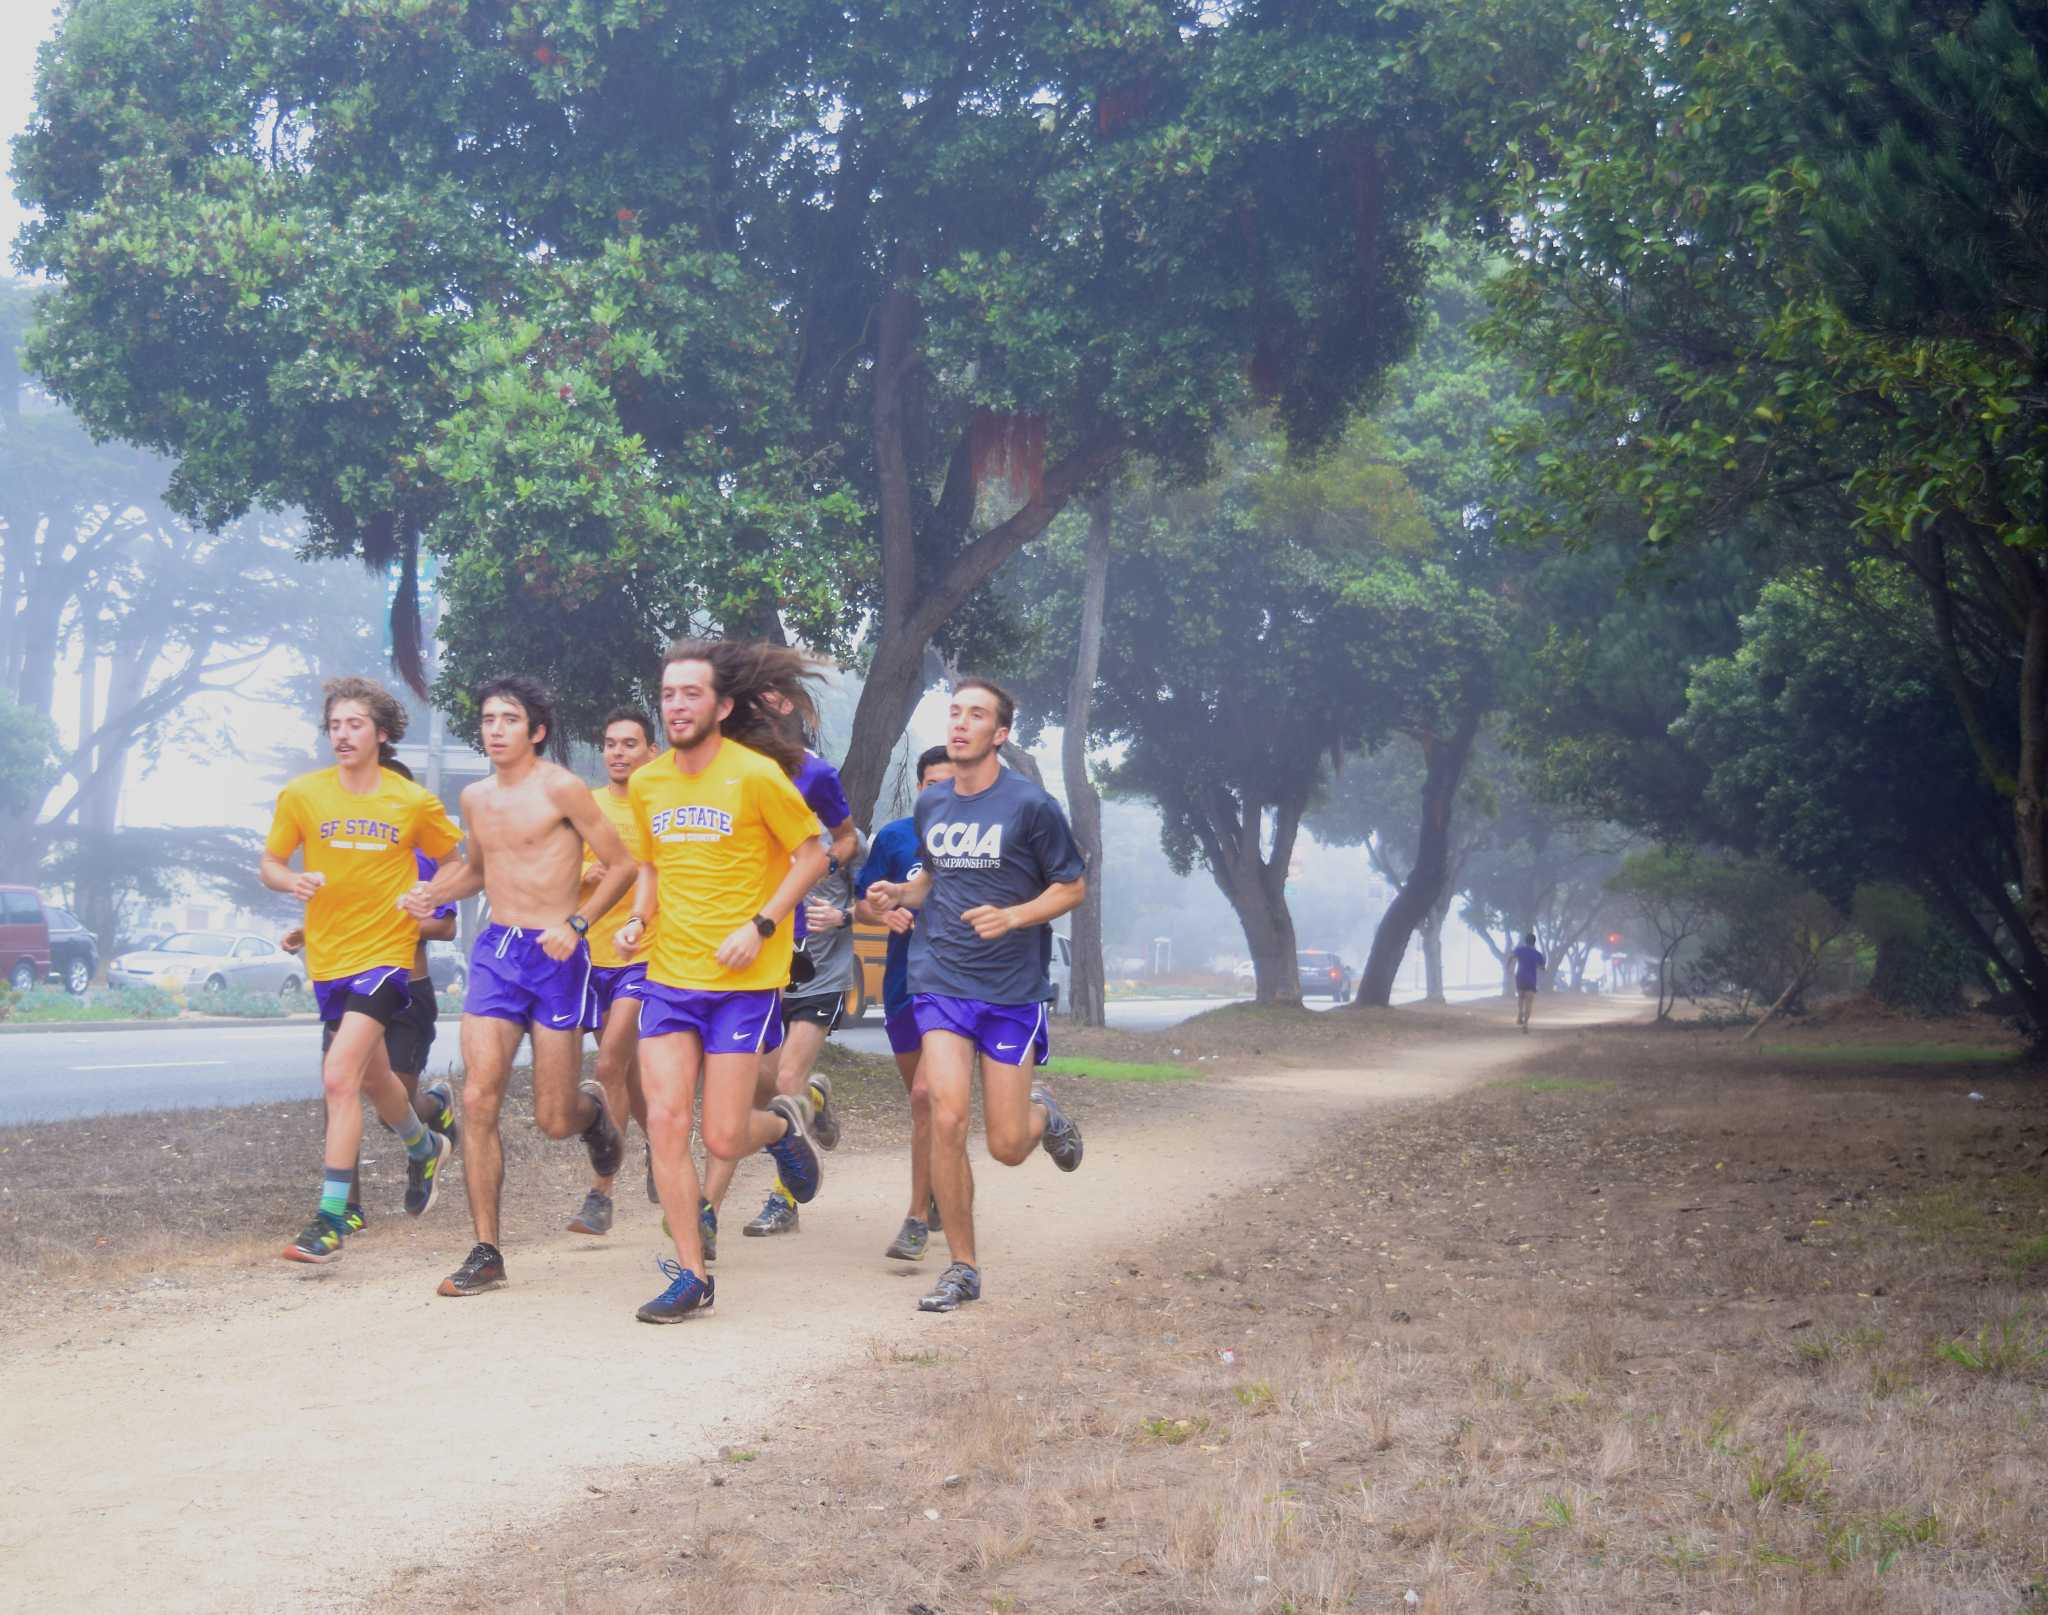 The SF State Cross Country team runs down a trail near Sunset Boulevard on Tuesday, Sept. 27, 2016